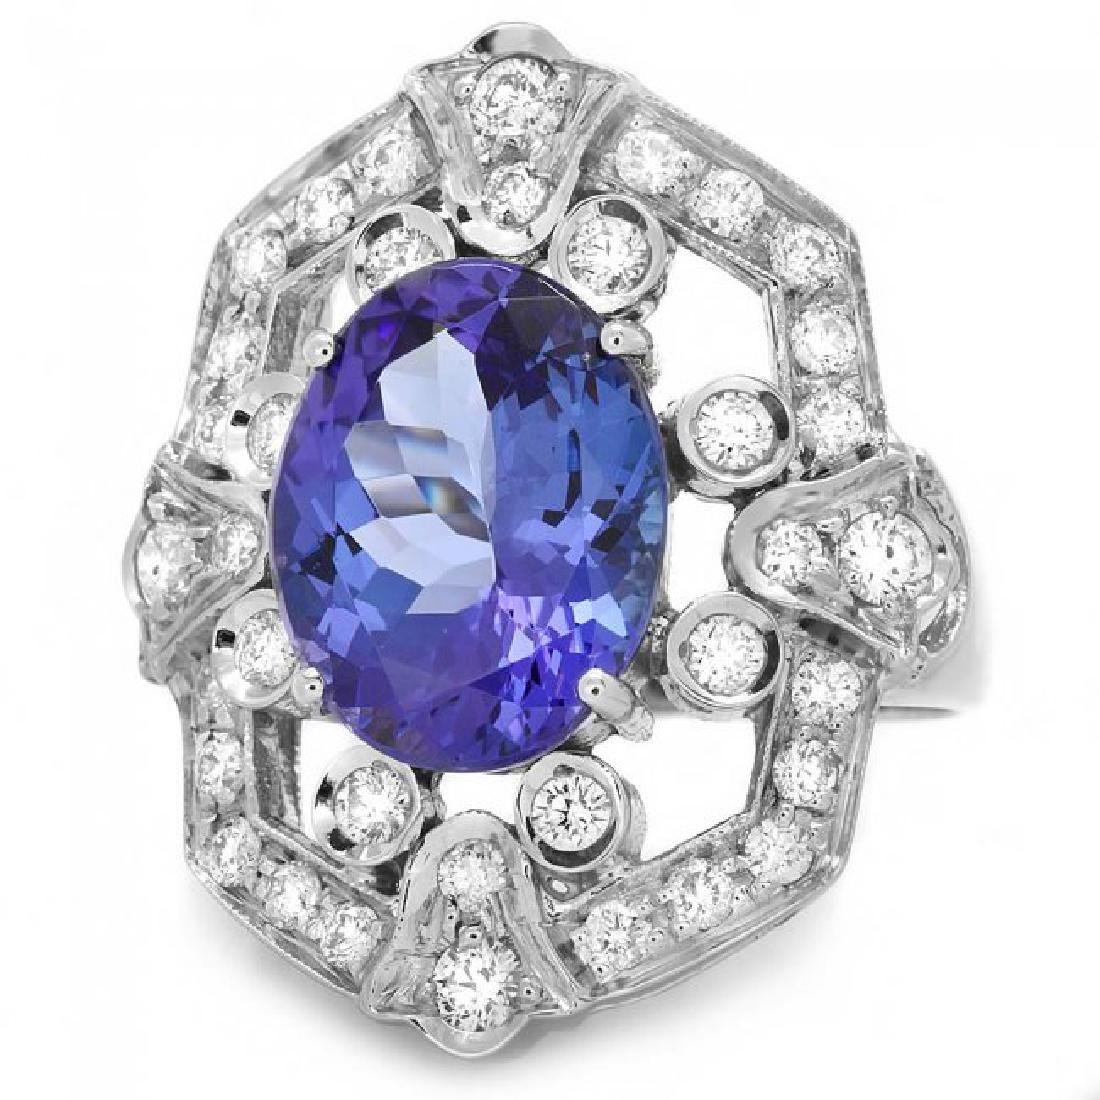 14k Gold 5.50ct Tanzanite 1.00ct Diamond Ring - 2